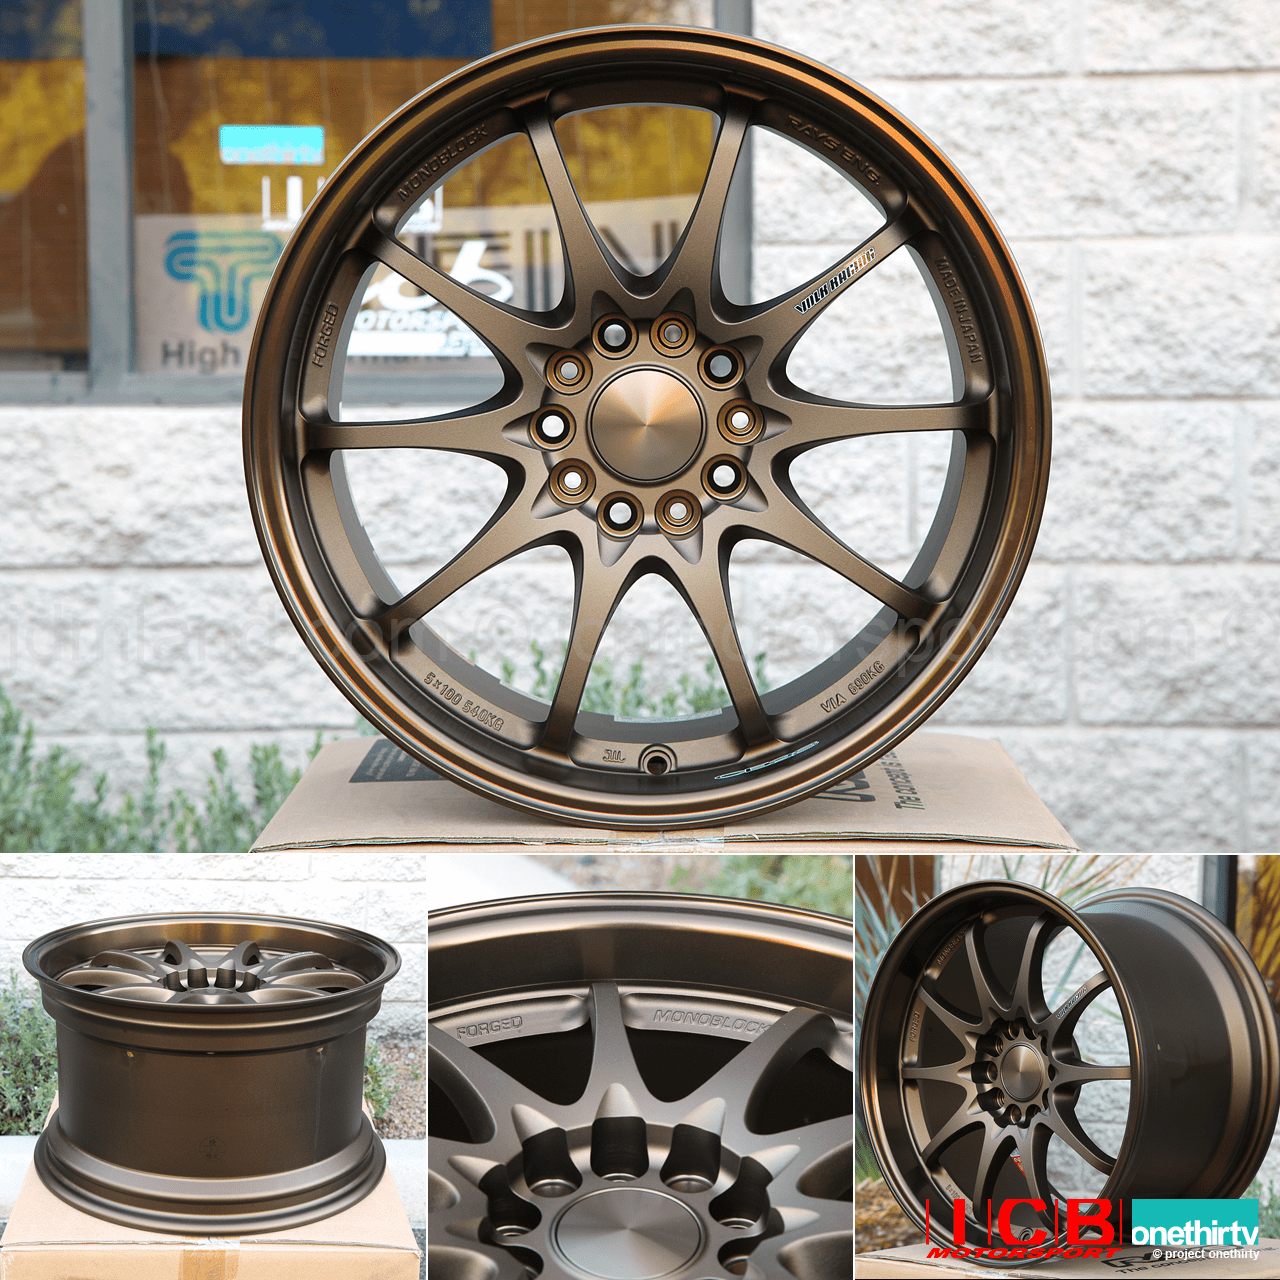 Rays Volk Racing CE28N Bronze Wheels Set 5X114.3 17X10 +50 Offset Concave Face BBK